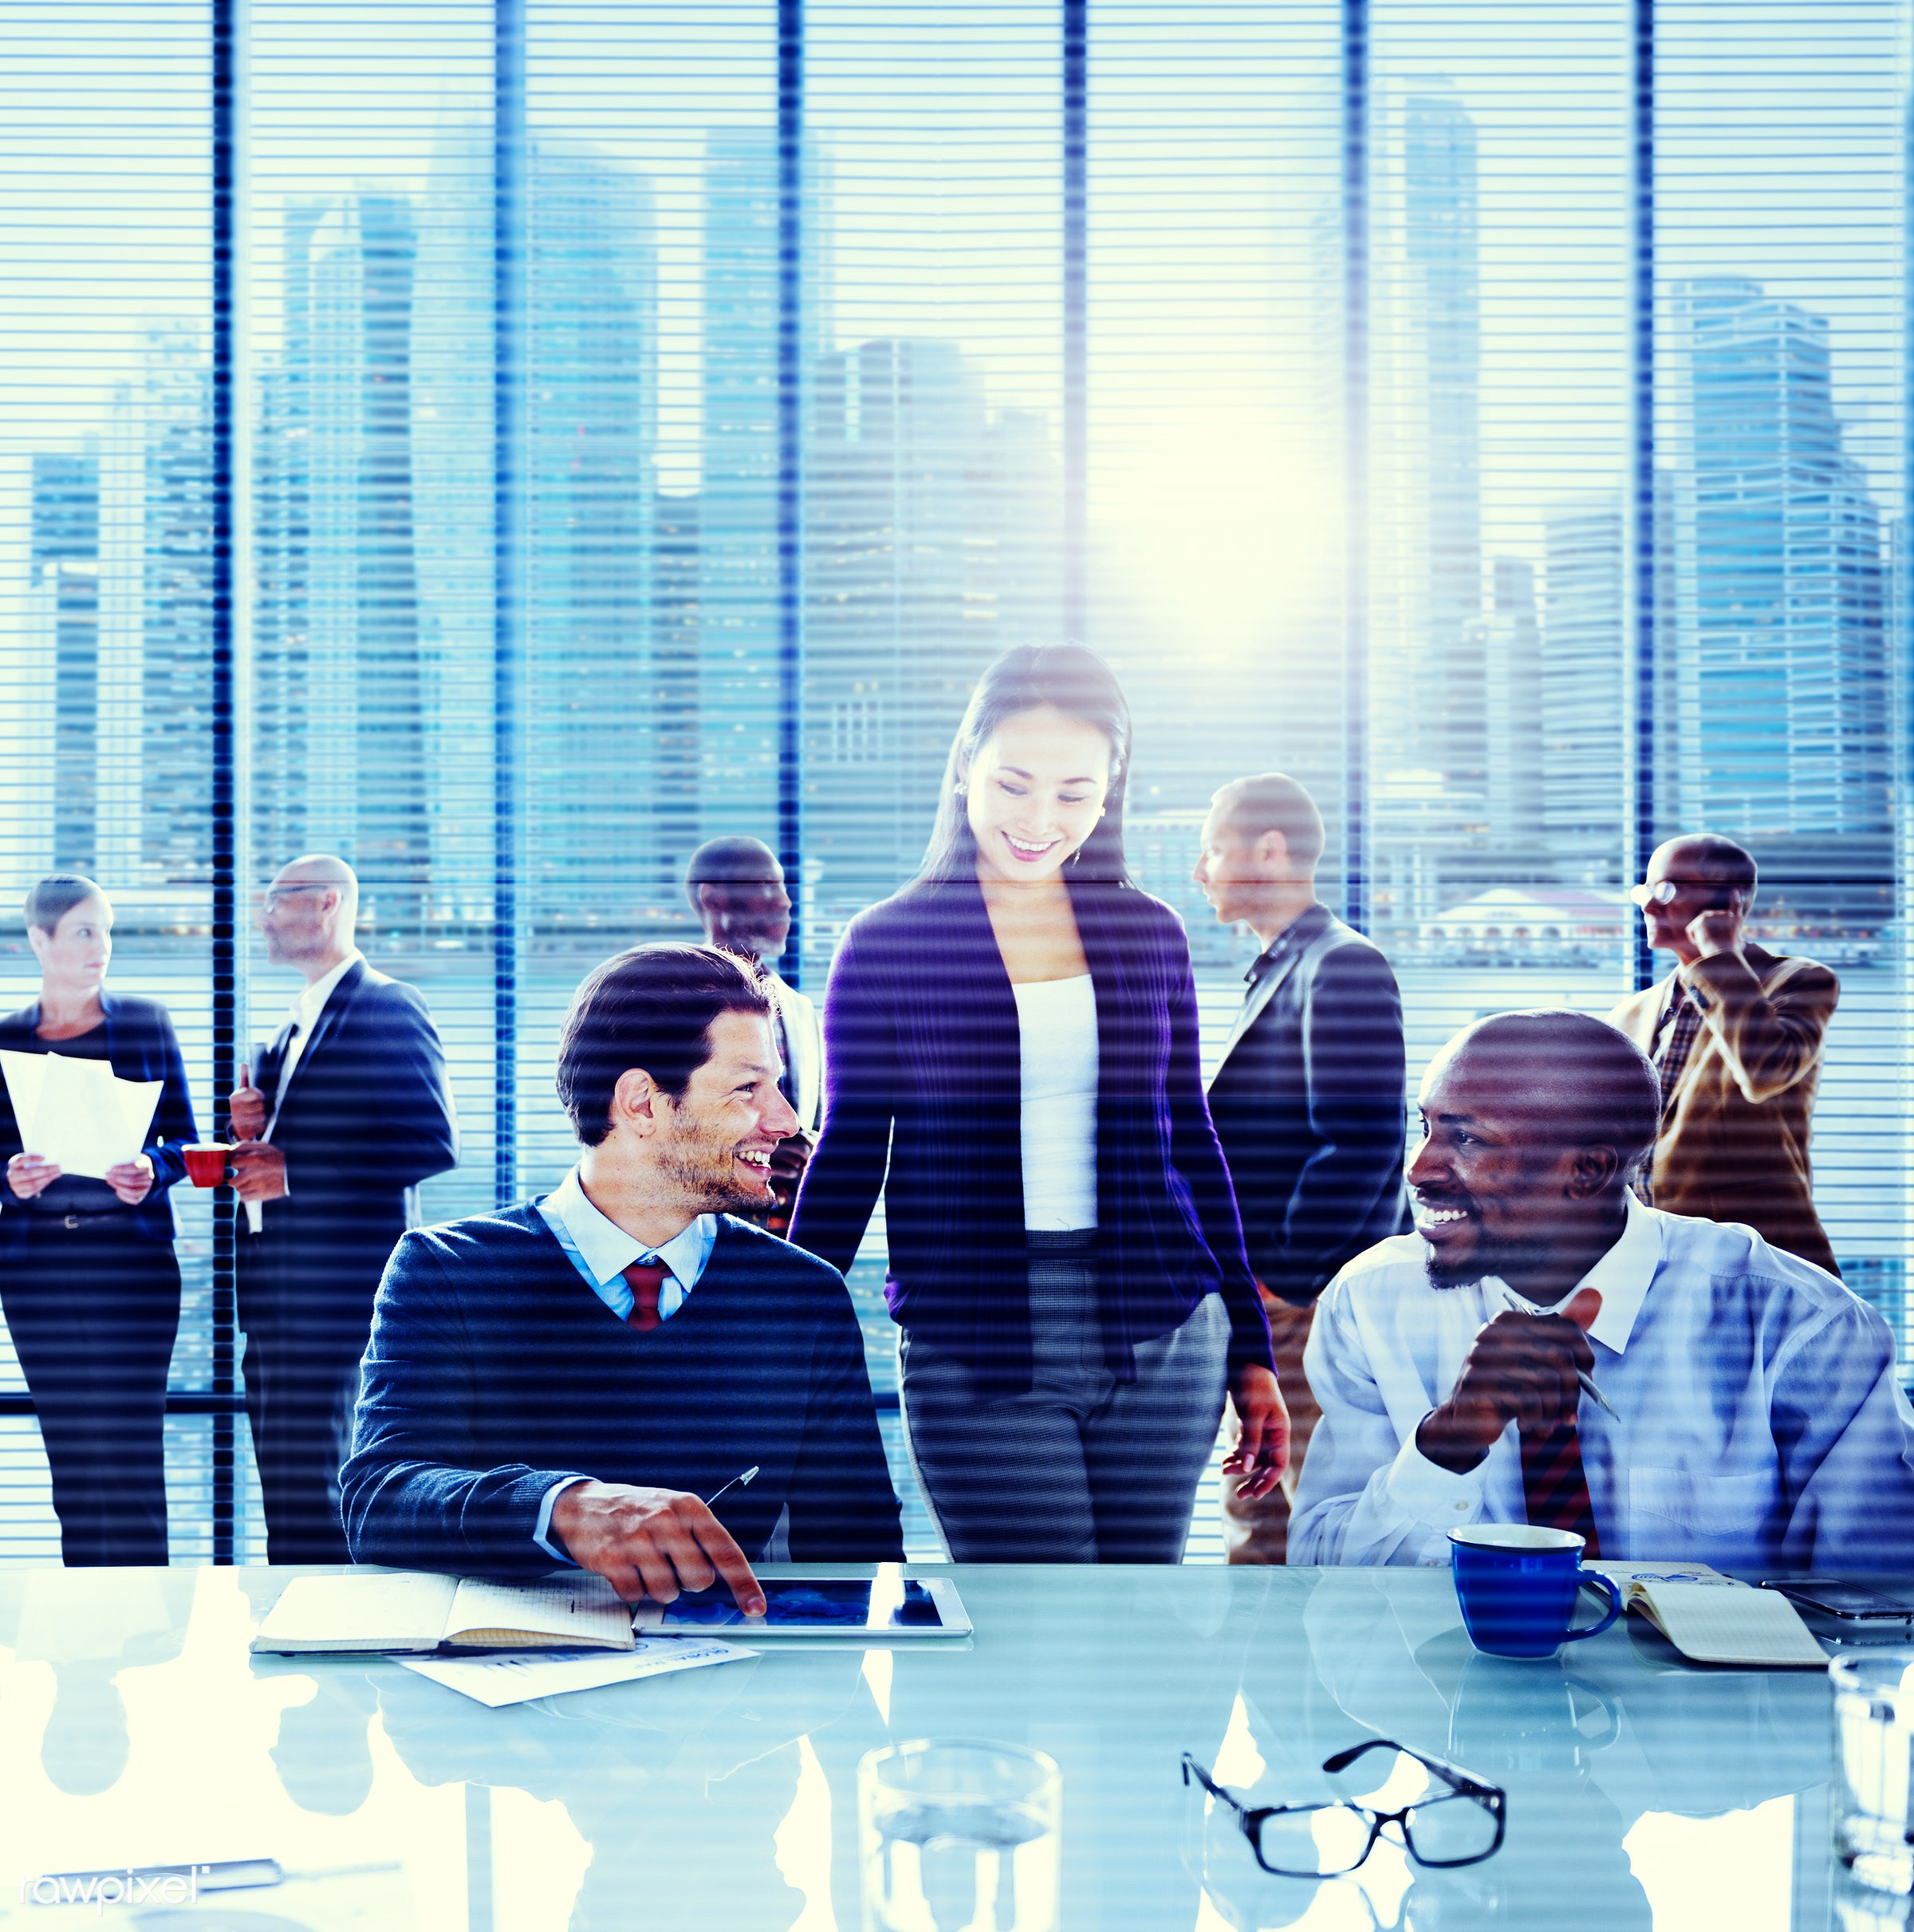 contemporary, african descent, asian ethnicity, brainstorming, business, business people, businessman, businesswoman,...